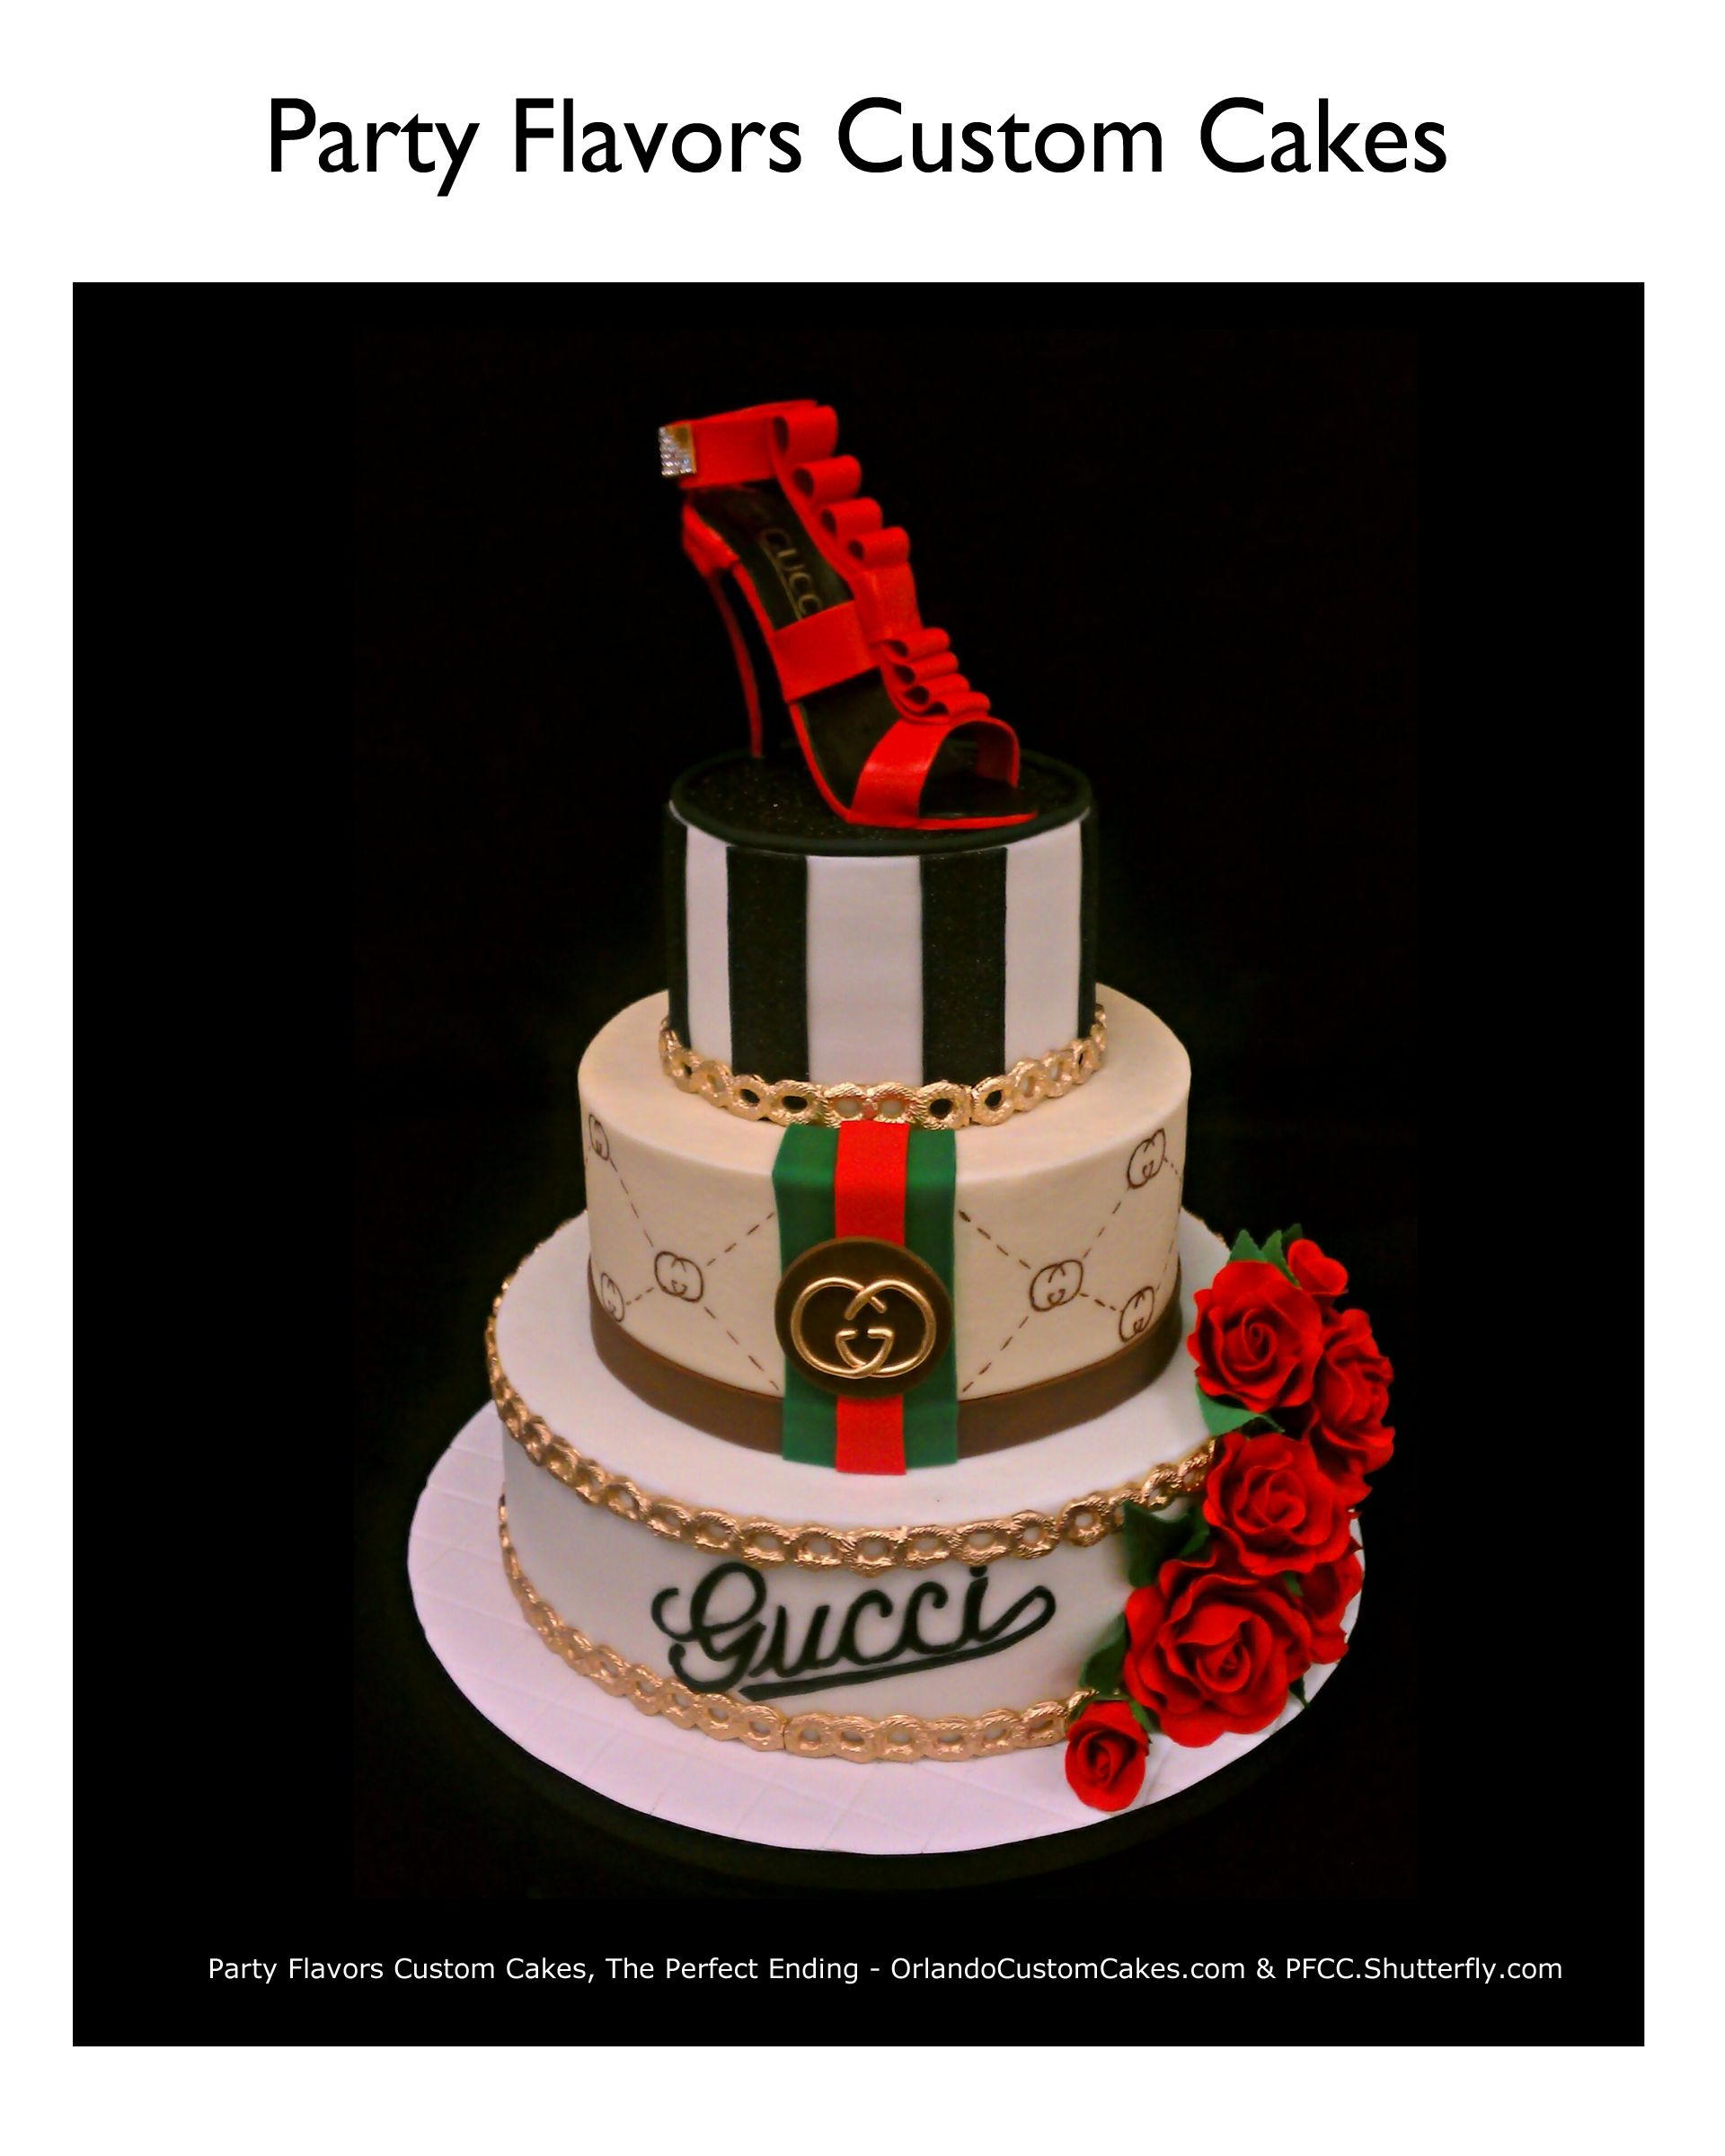 Gucci Birthday Cake Gucci Buttercream Cake Designers Birthday Cake Pinterest Gucci